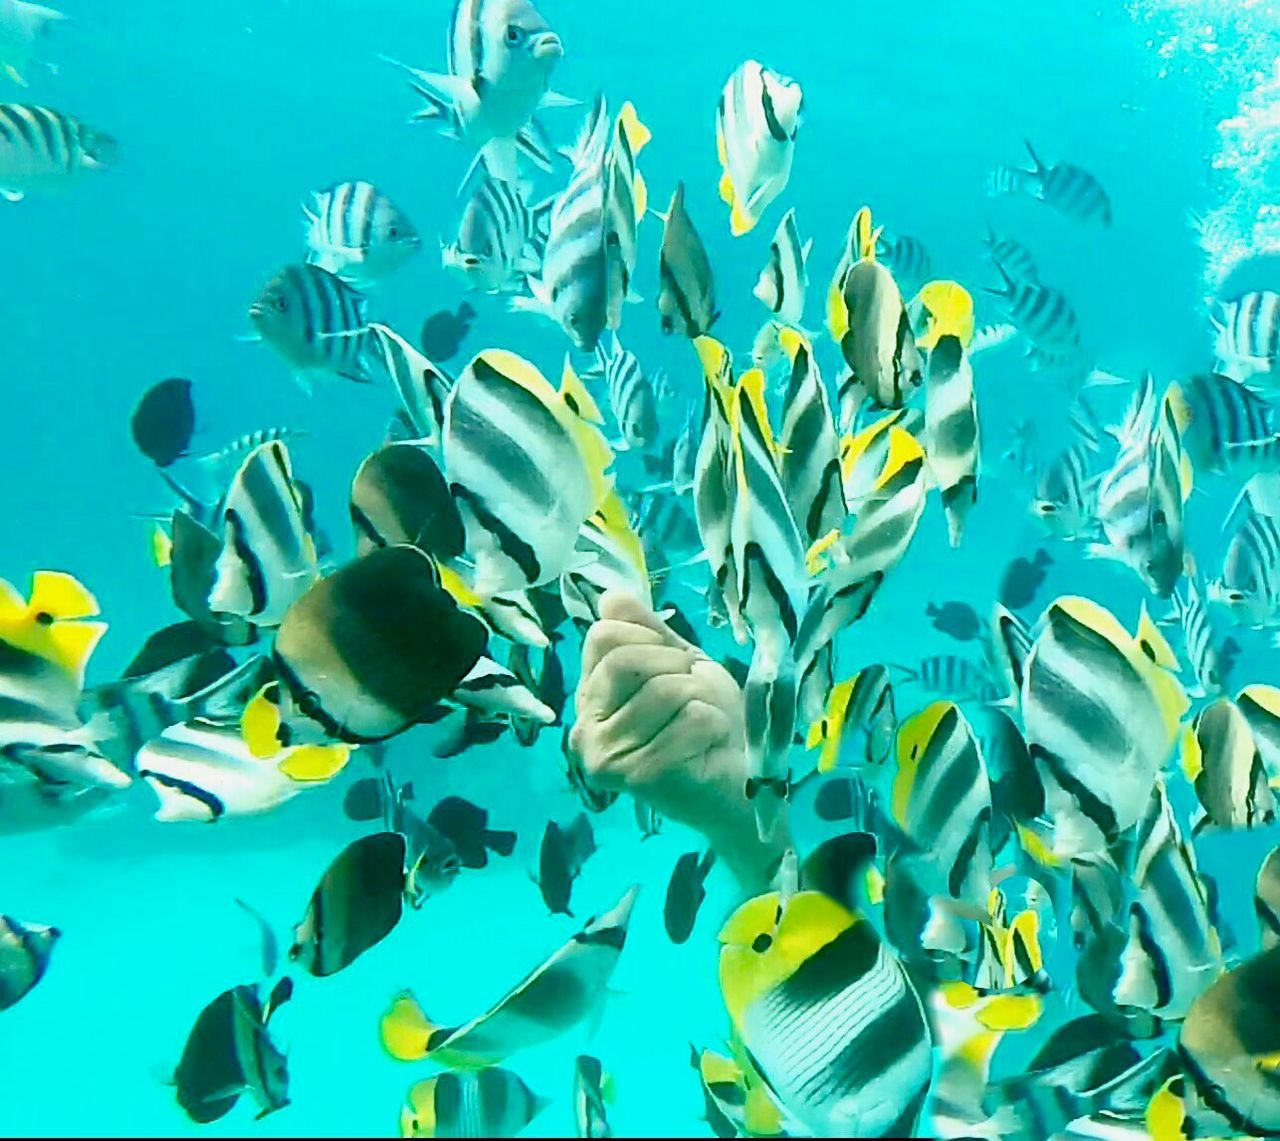 underwater, fish, water, swimming, large group of animals, school of fish, sea life, undersea, animals in the wild, blue, sea, animal themes, animal wildlife, nature, snorkeling, real people, aquarium, beauty in nature, day, outdoors